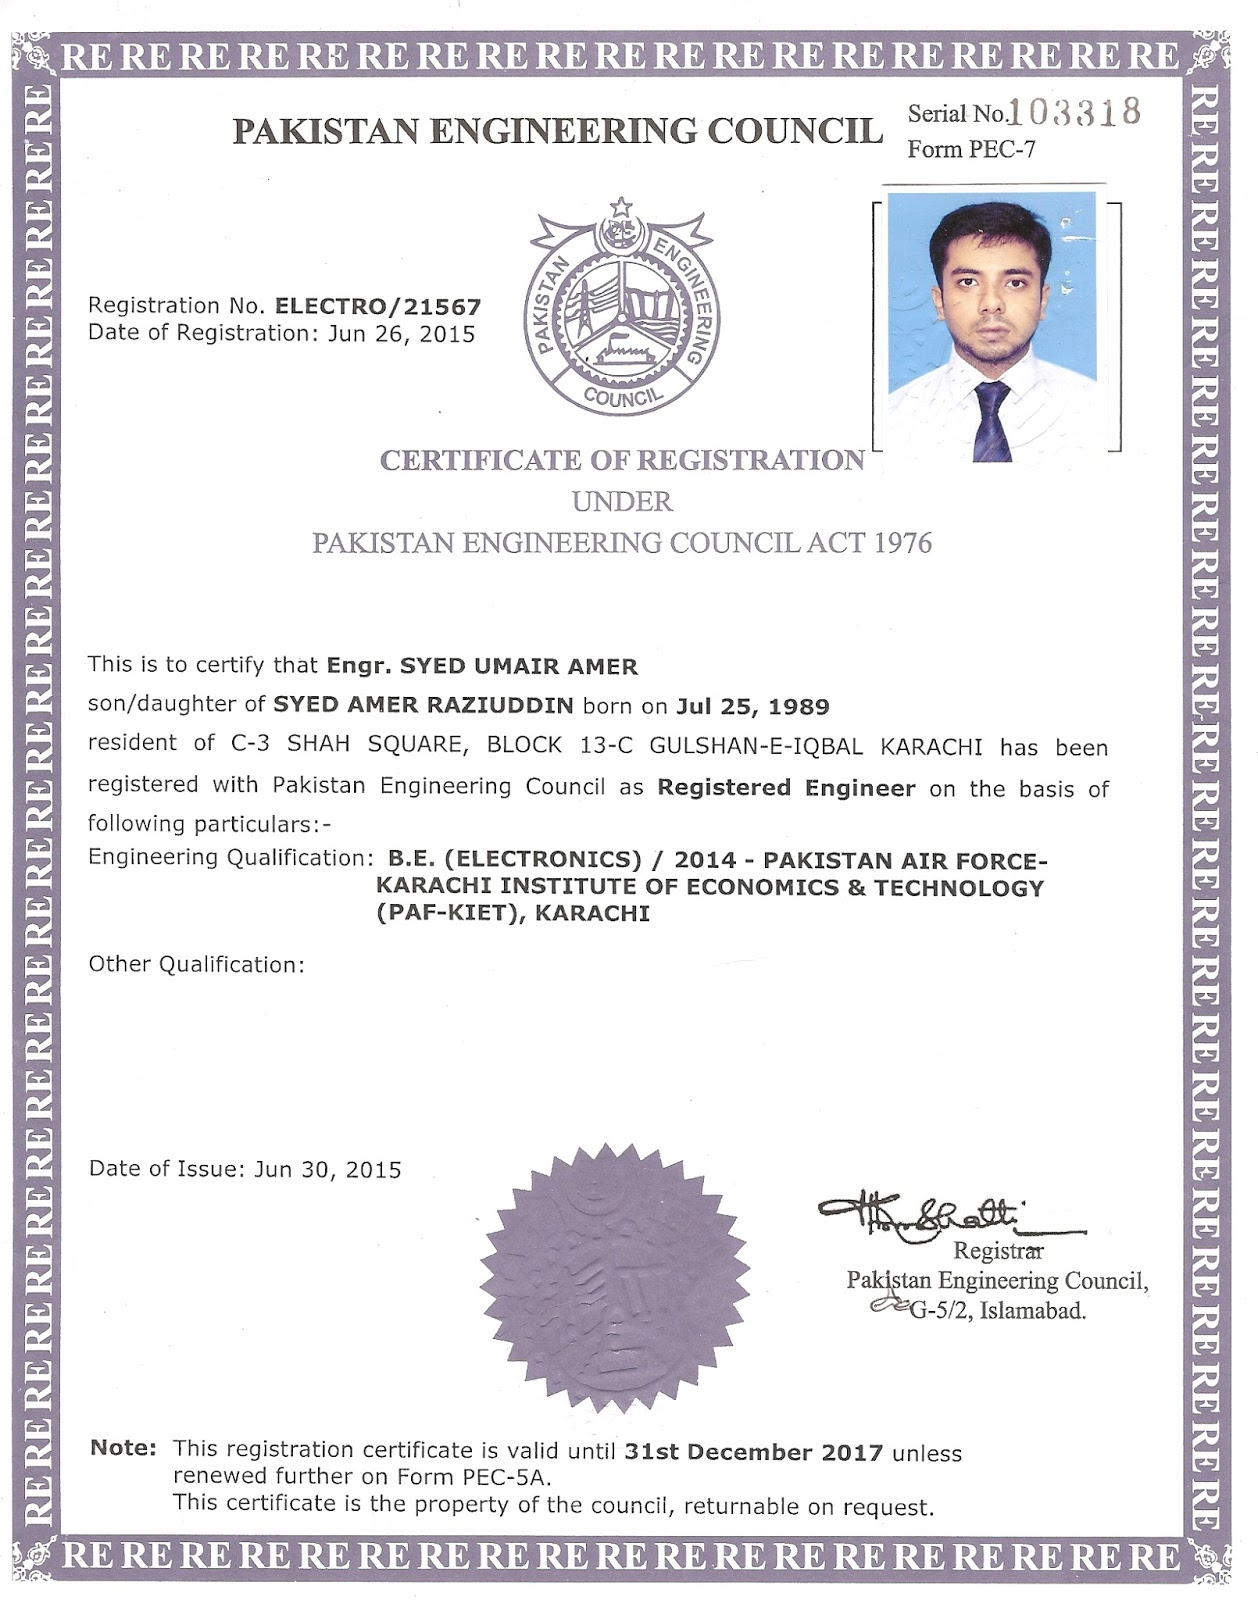 Syed umair amer certificates my certifications certificate of registration from pakistan engineering council xflitez Gallery